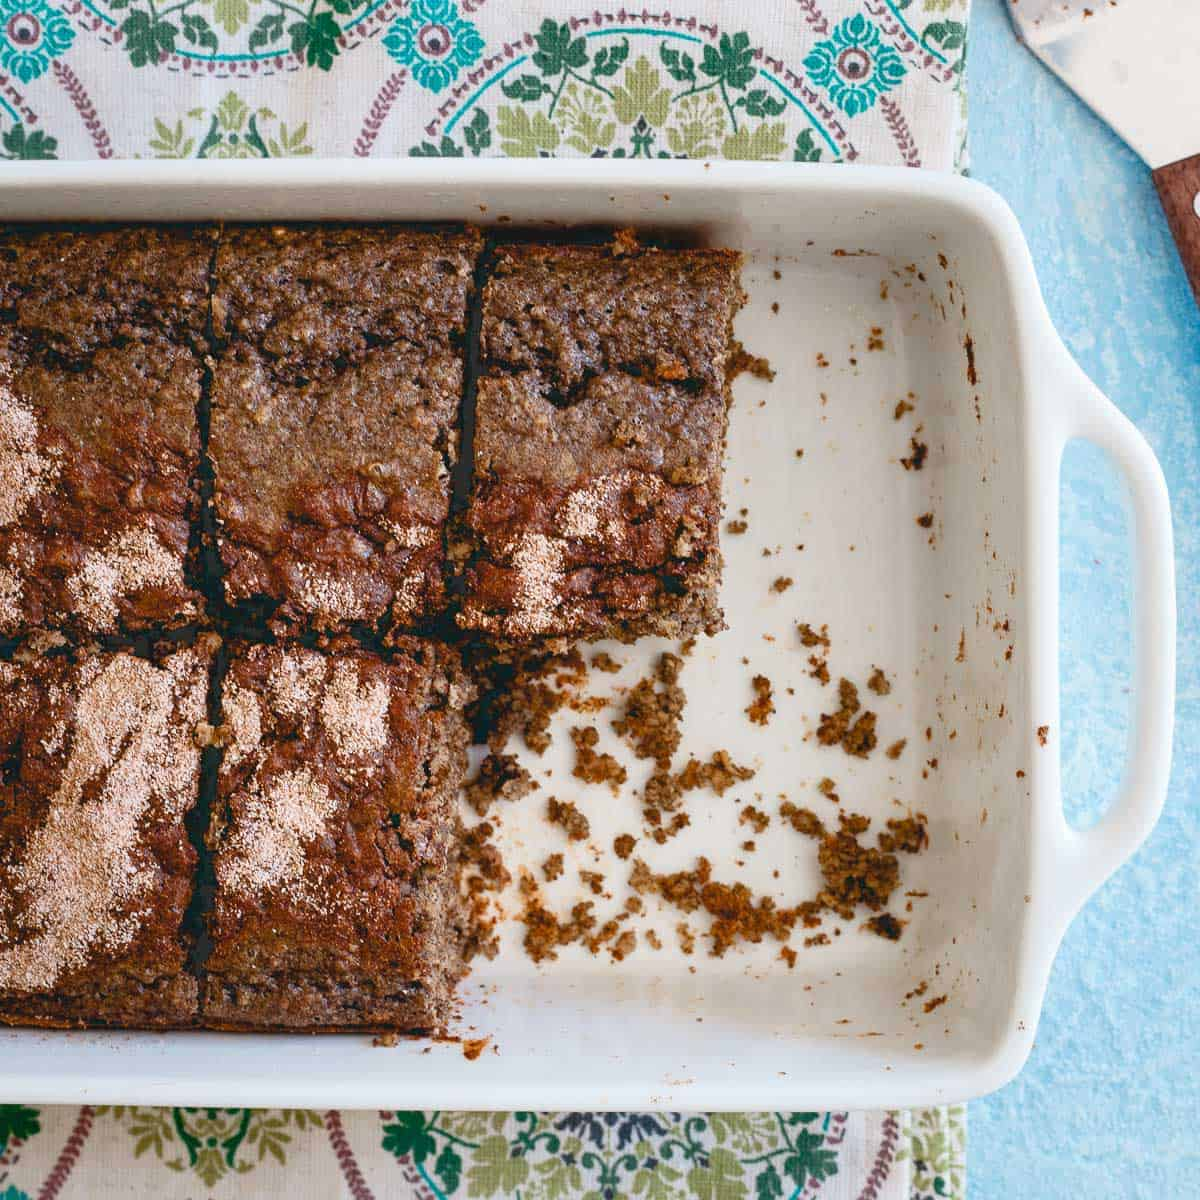 A healthy snack that tastes like coffee cake! You can't go wrong with these high protein cinnamon cake bars.